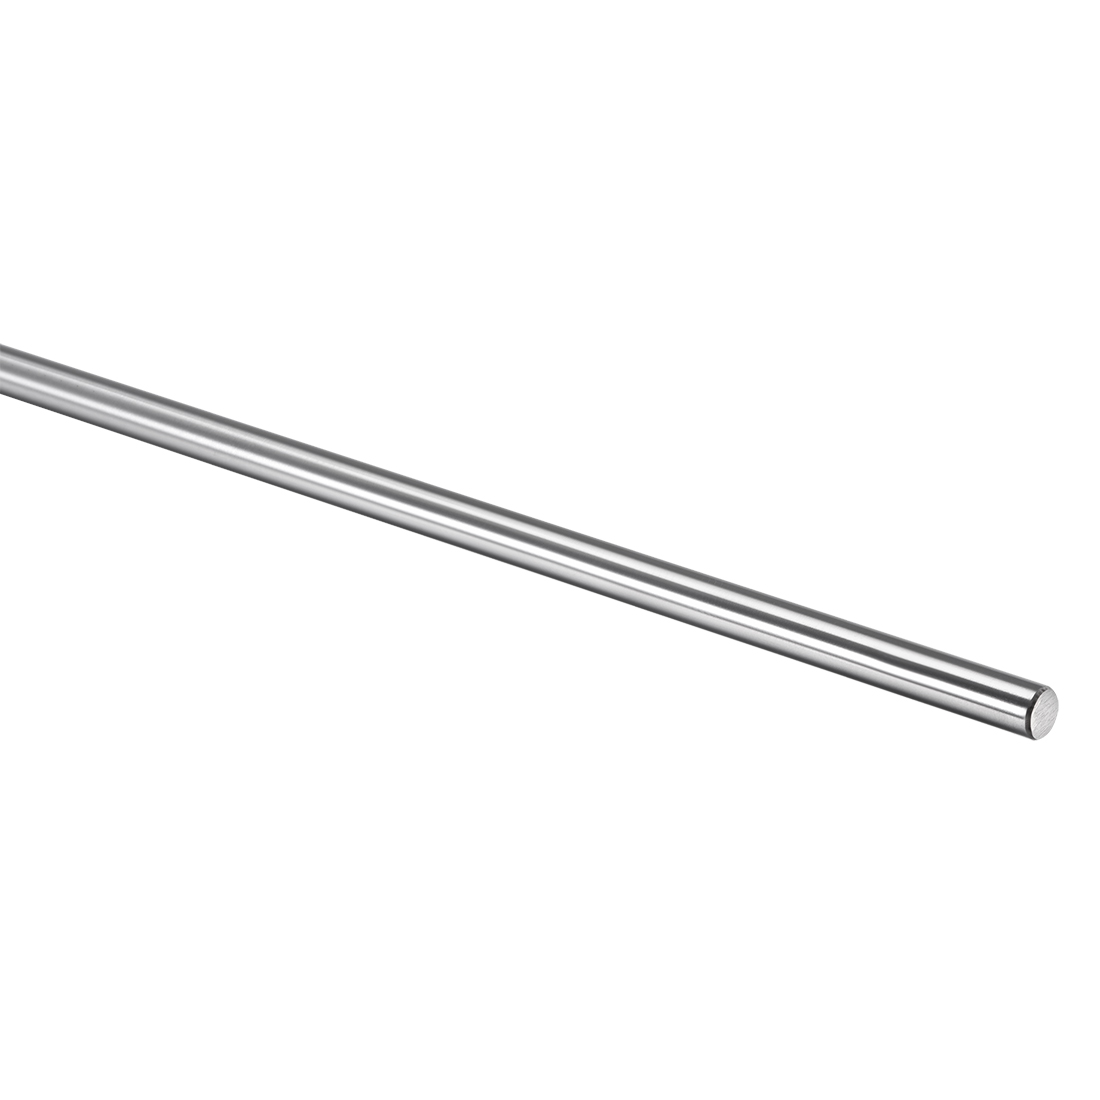 8mm x 332mm Hardened Rod Chrome Plated Linear Motion Shaft / Guide